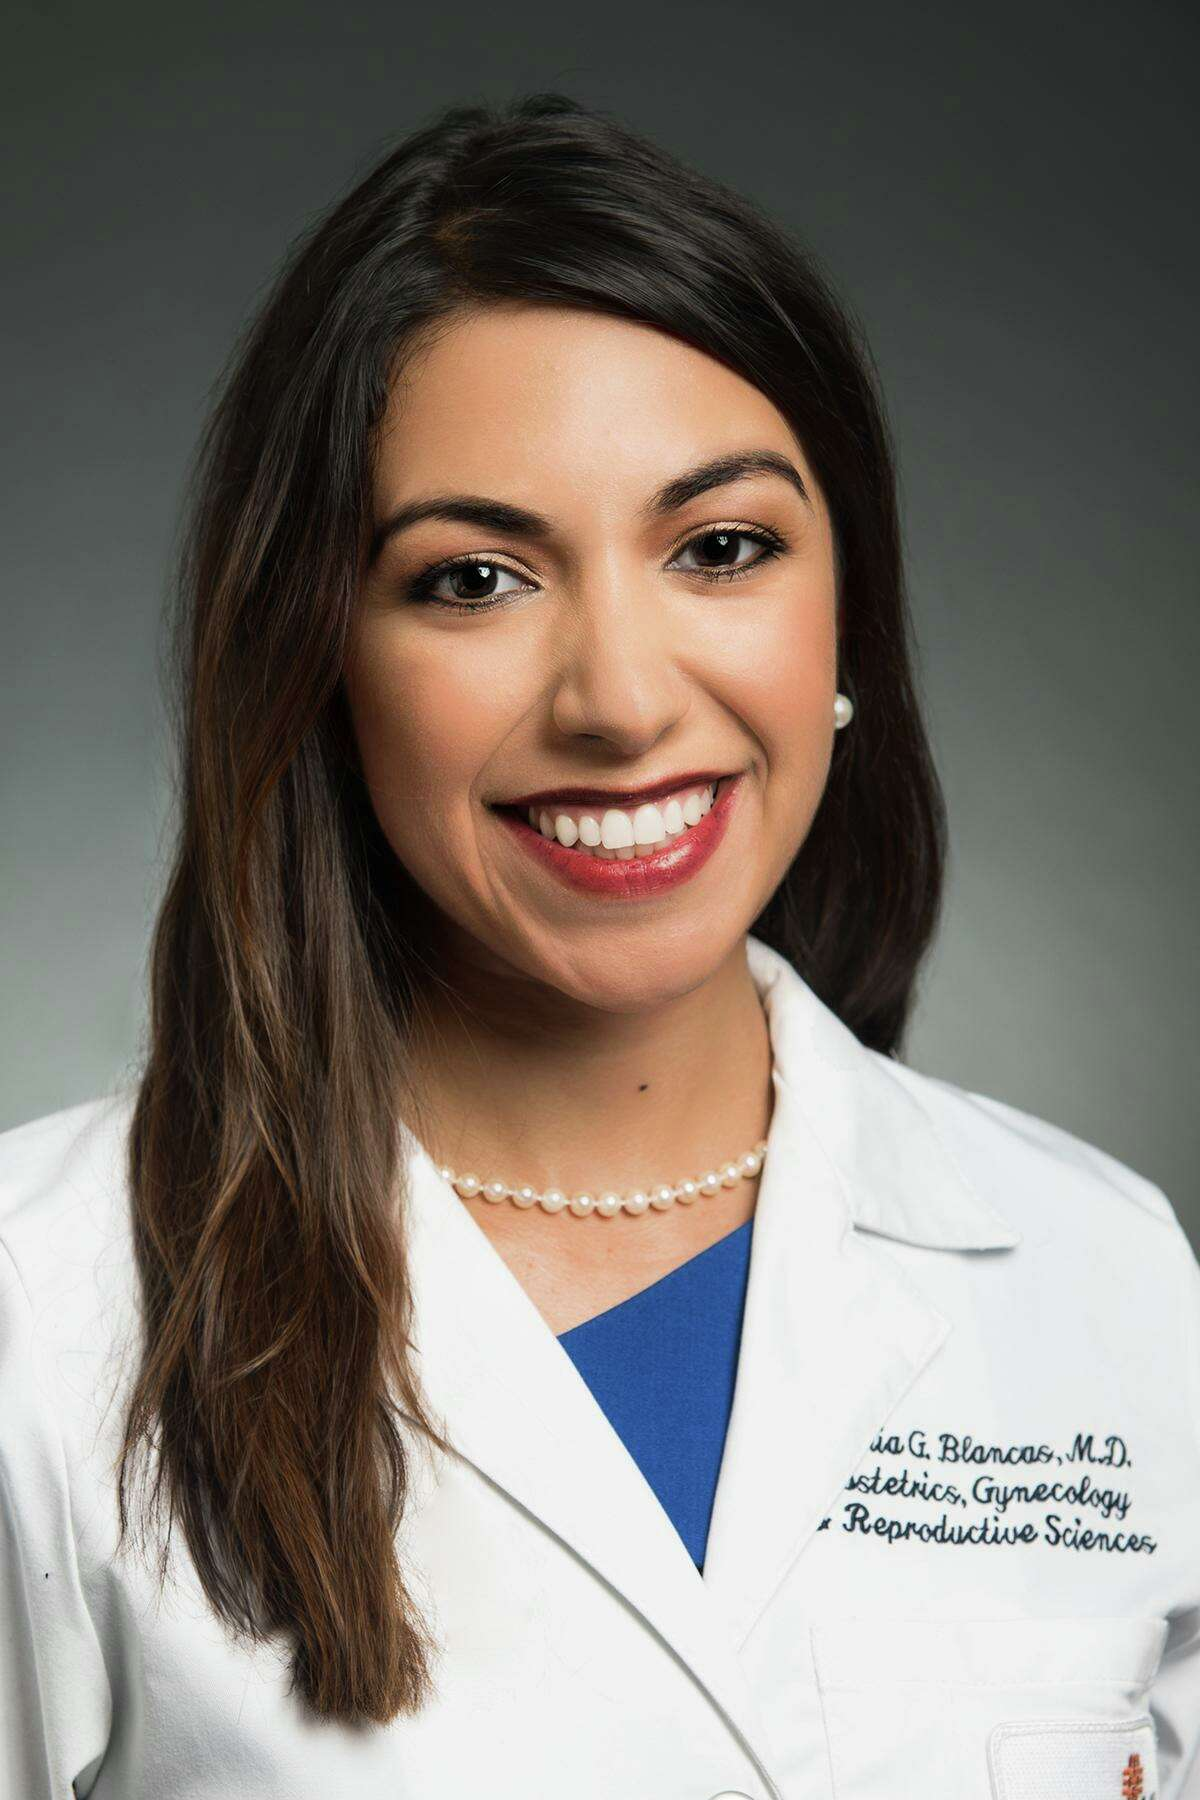 Dr. Yesenia Blancas is an OB/GYN affiliated with Memorial Hermann Memorial City Medical Center and assistant professor with McGovern Medical School at UT Health.